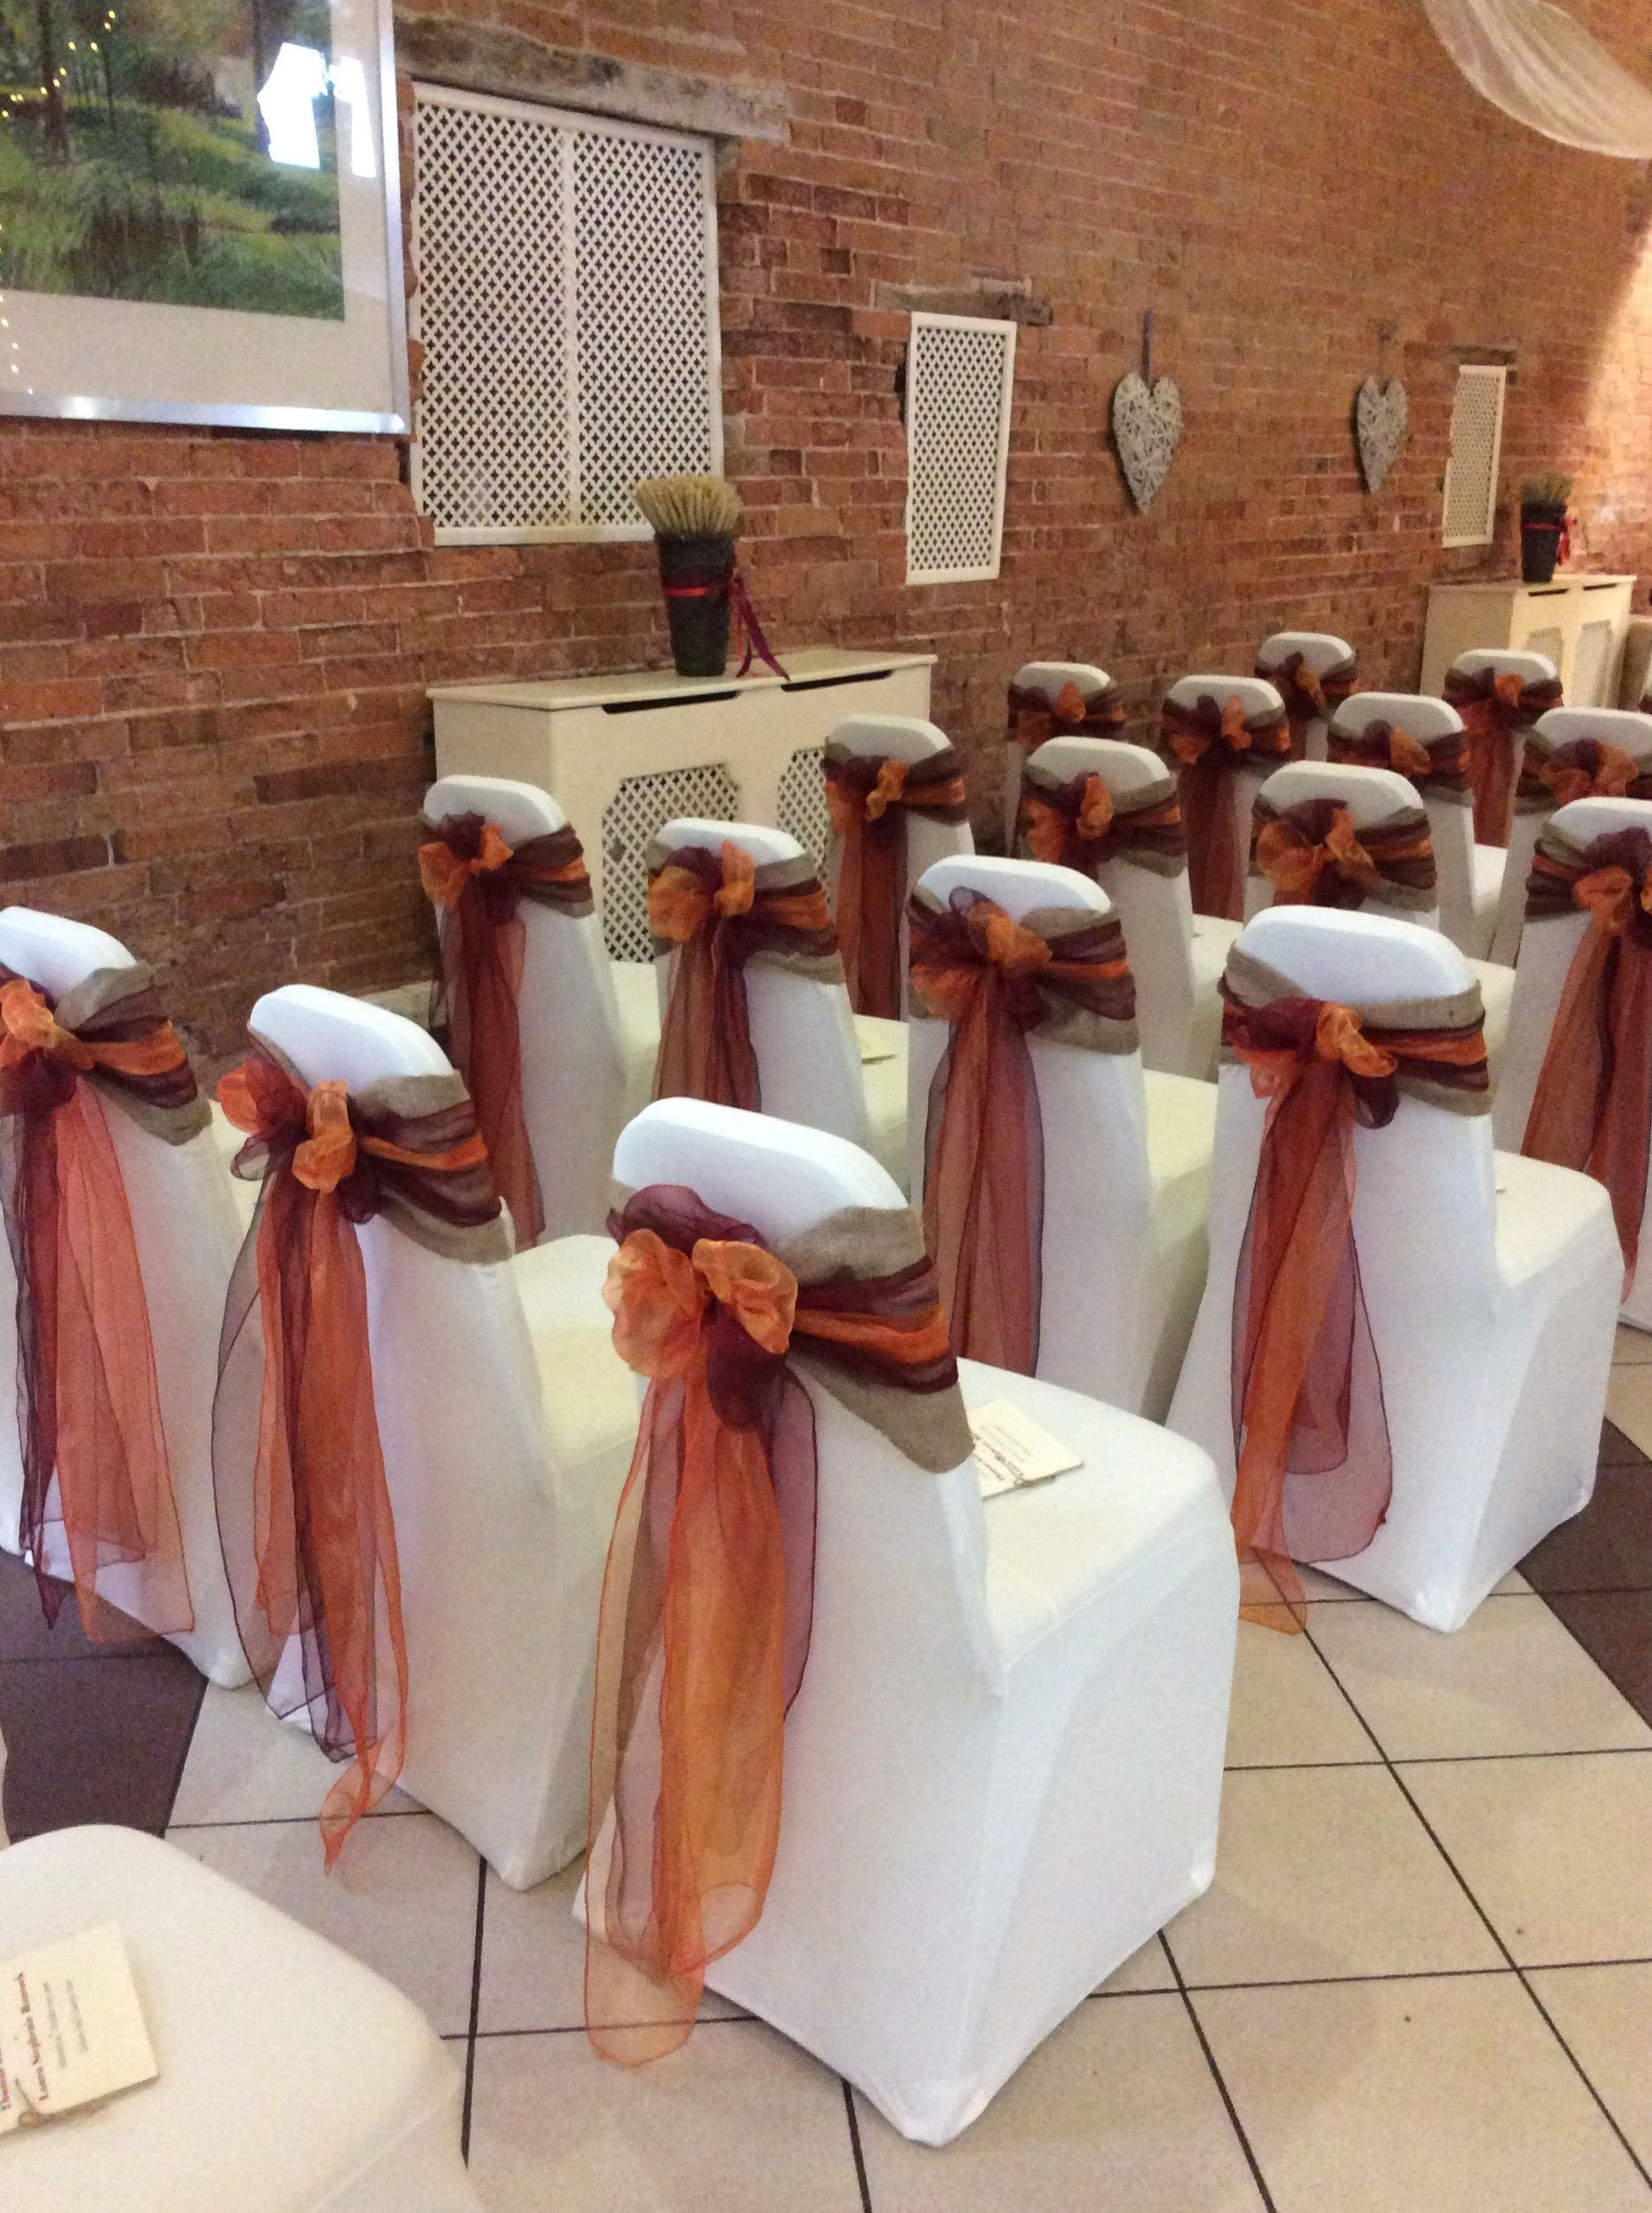 Burgundy Chair Covers Wedding Diy Lawn Cushions Hessian Topped With And Orange Sashes For An Autumnal Theme Www Beautifulvenuedecor Co Uk